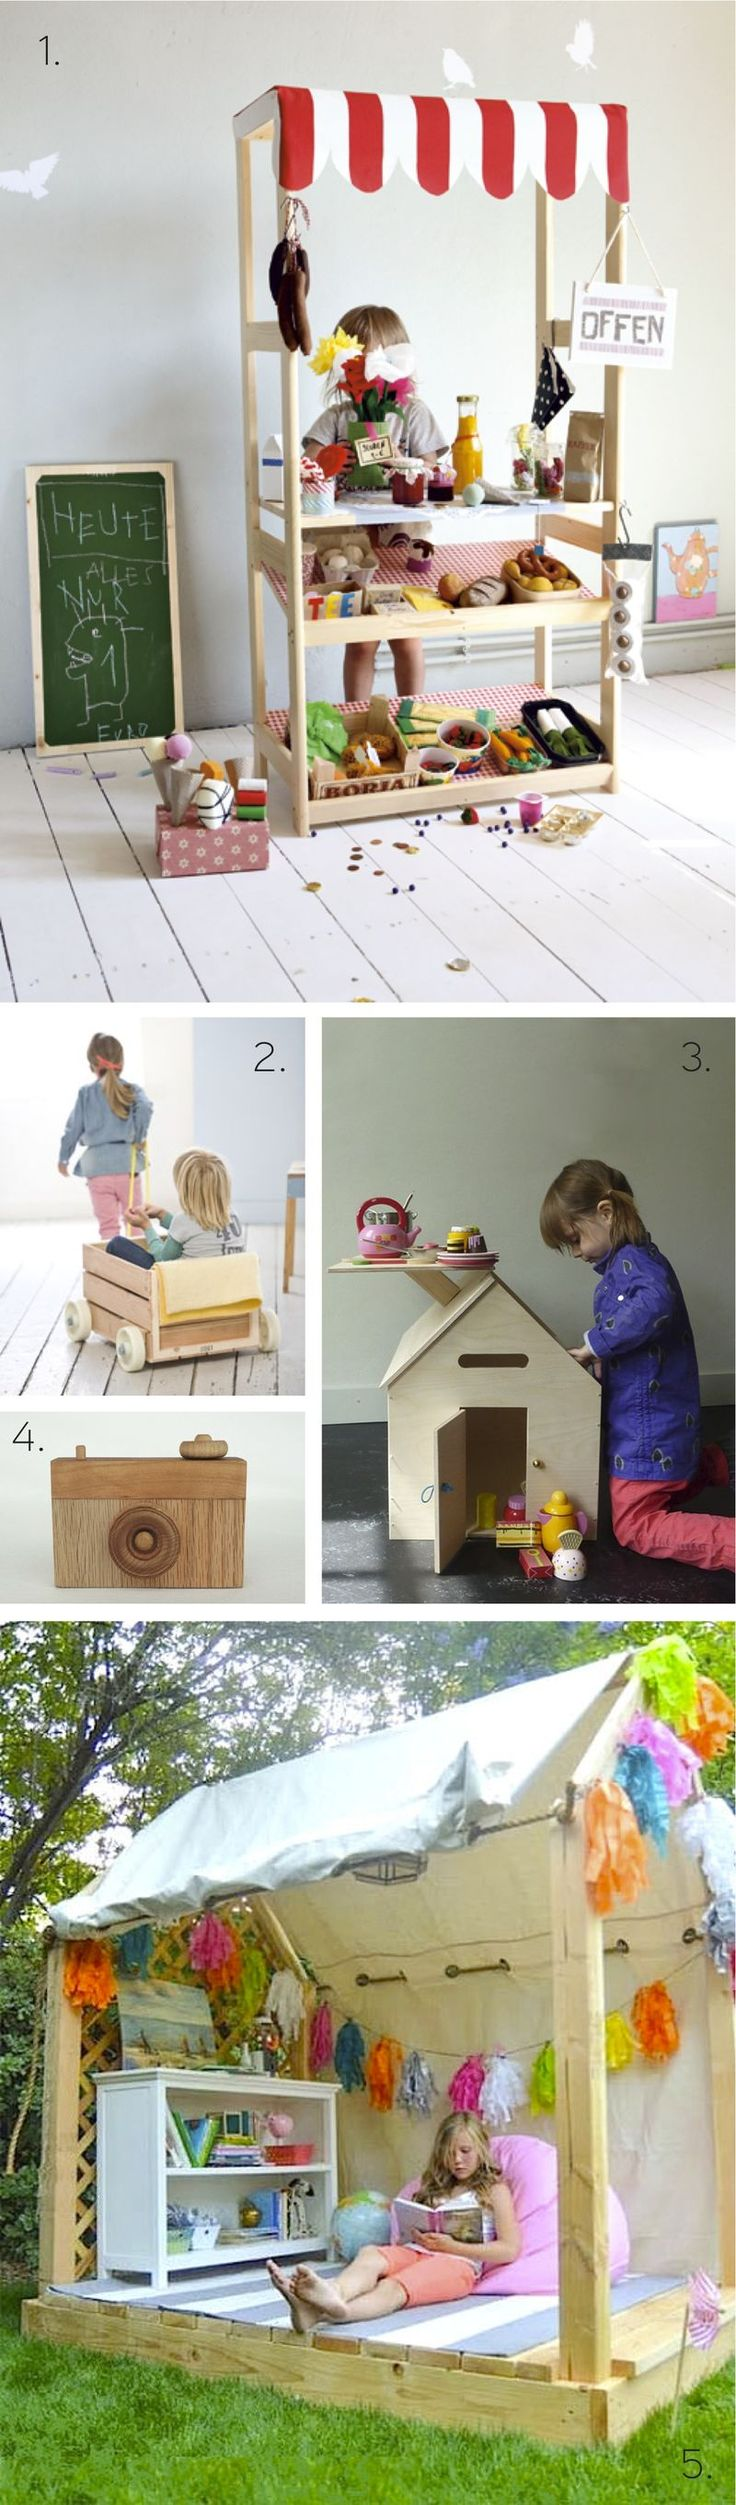 DIY Wooden Projects for Kids - http://habitatkid.typepad.com/blog/2013/08/create-5-diy-wooden-projects.html